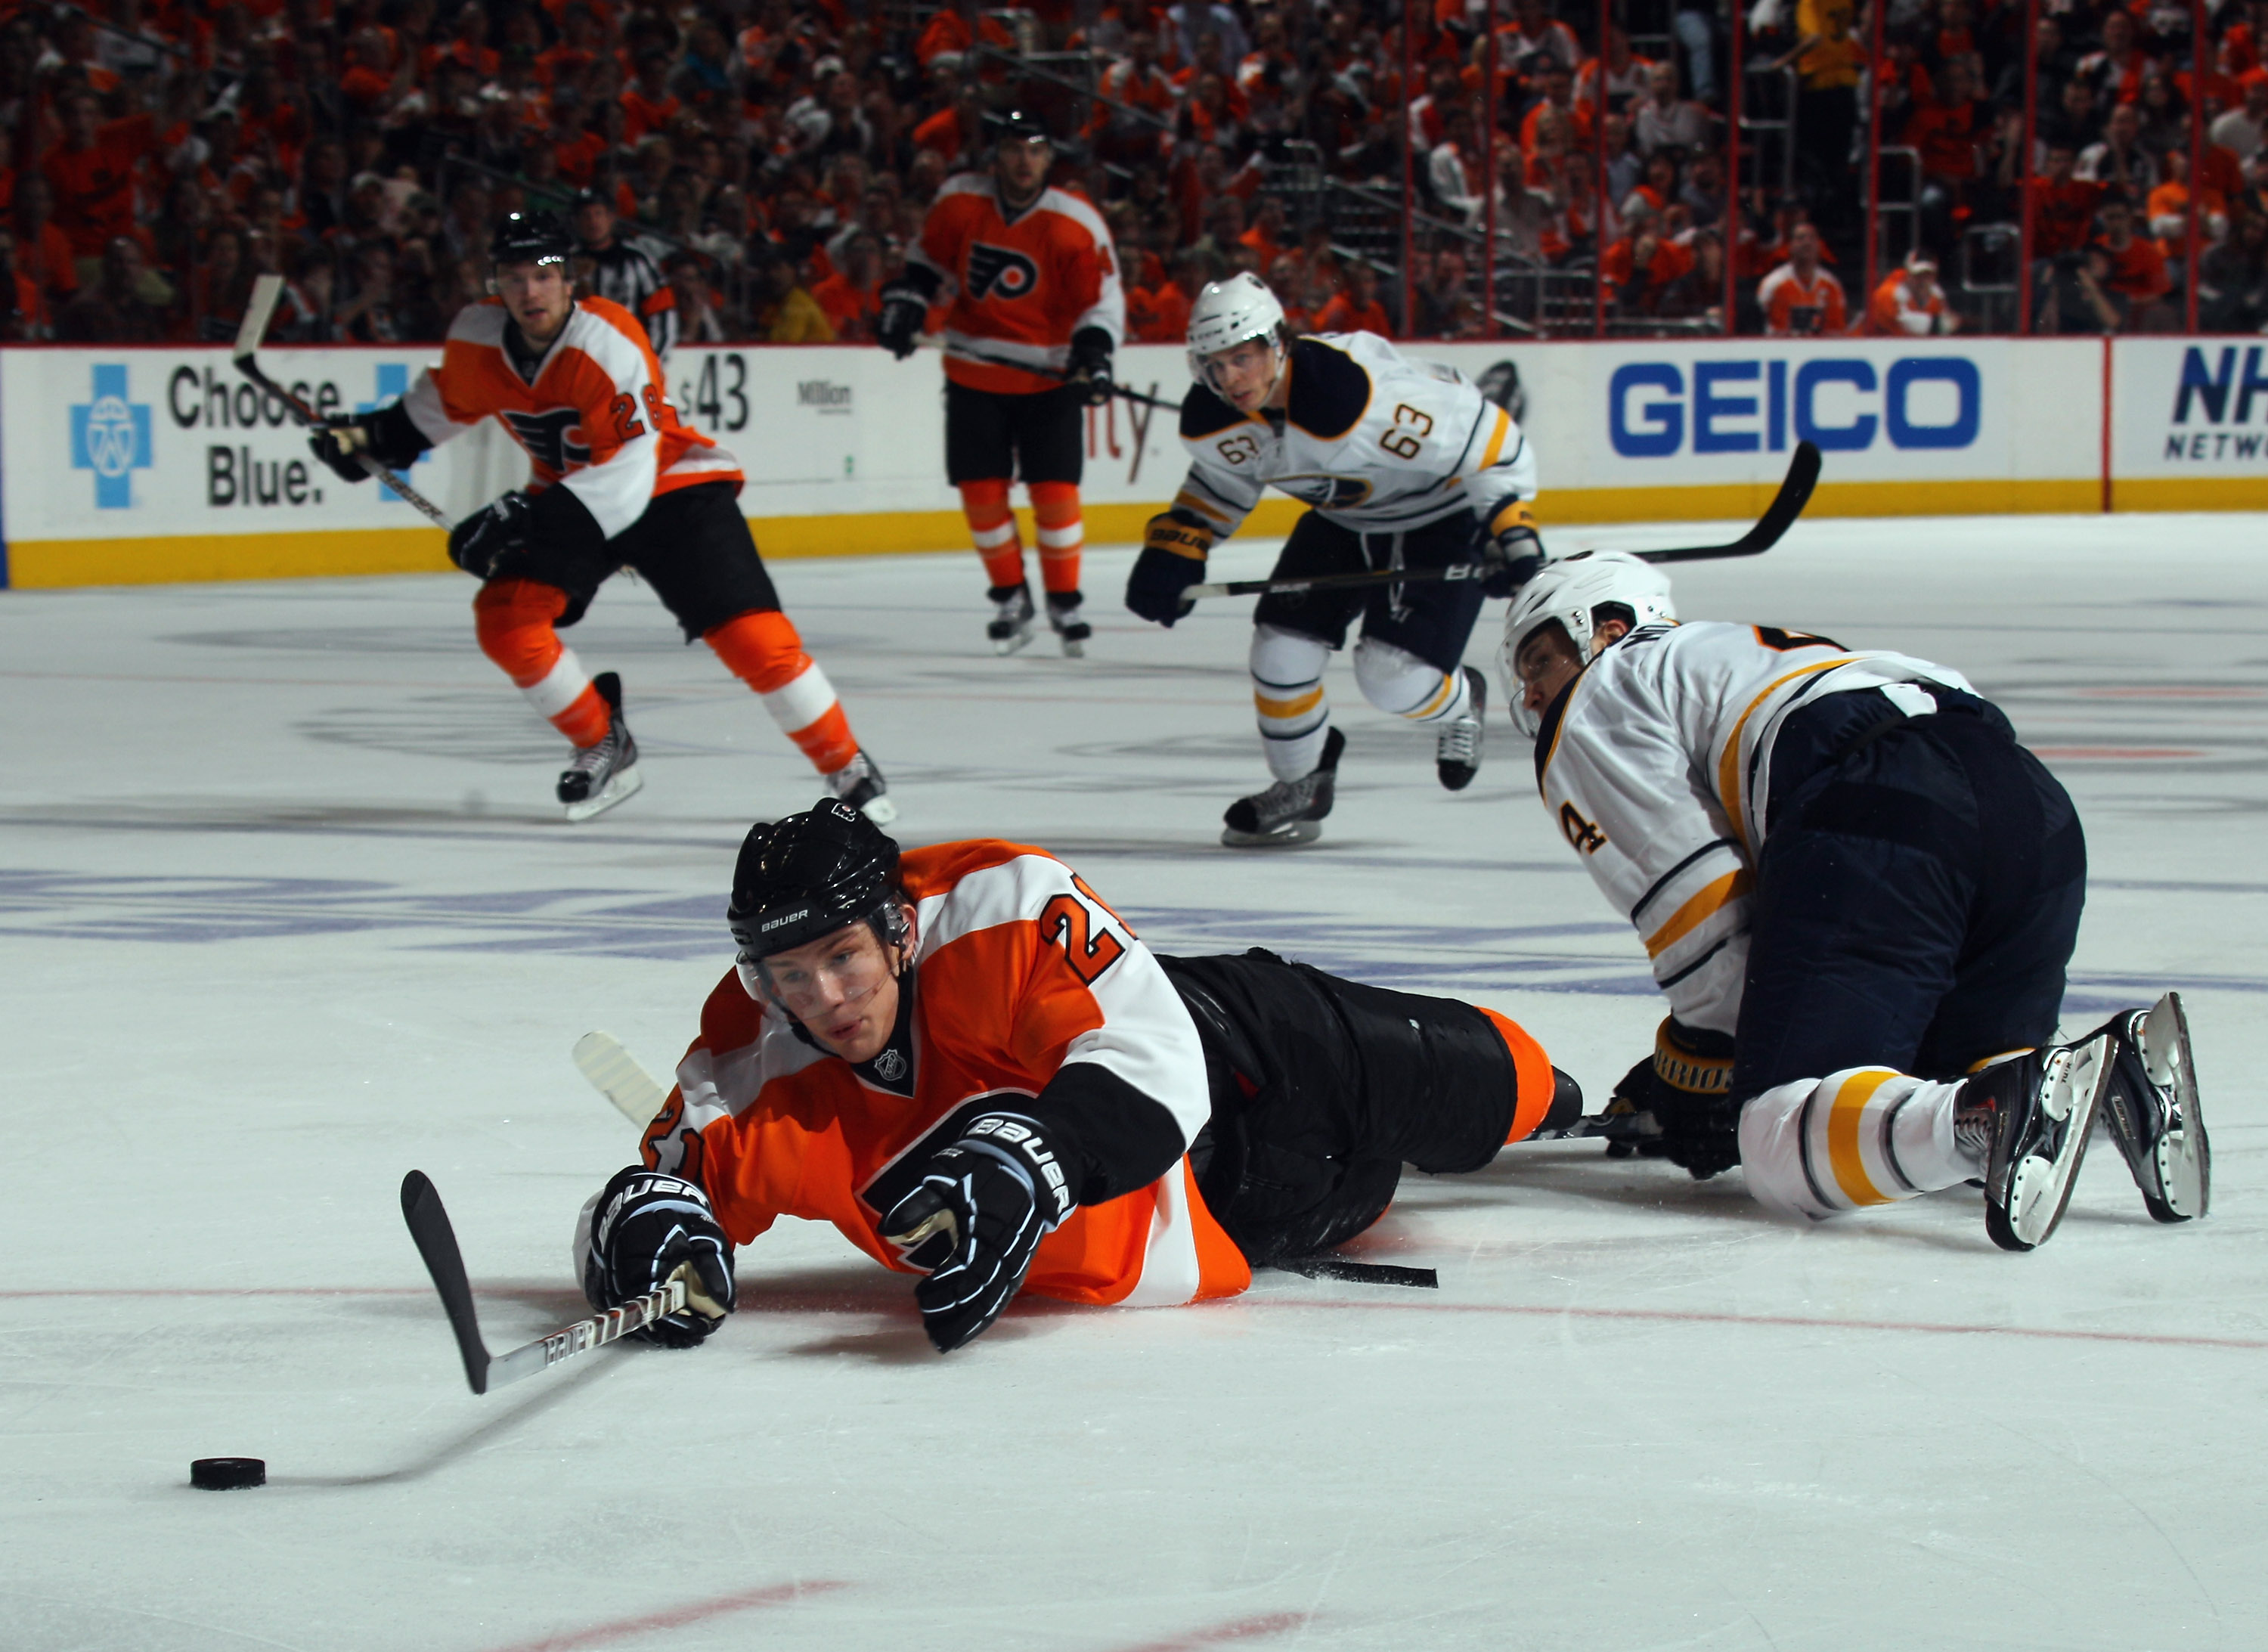 PHILADELPHIA, PA - APRIL 14:  Steve Montador #4 of the Buffalo Sabres takes a two minute penalty for tripping James van Riemsdyk #21 of the Philadelphia Flyers in Game One of the Eastern Conference Quarterfinals during the 2011 NHL Stanley Cup Playoffs at